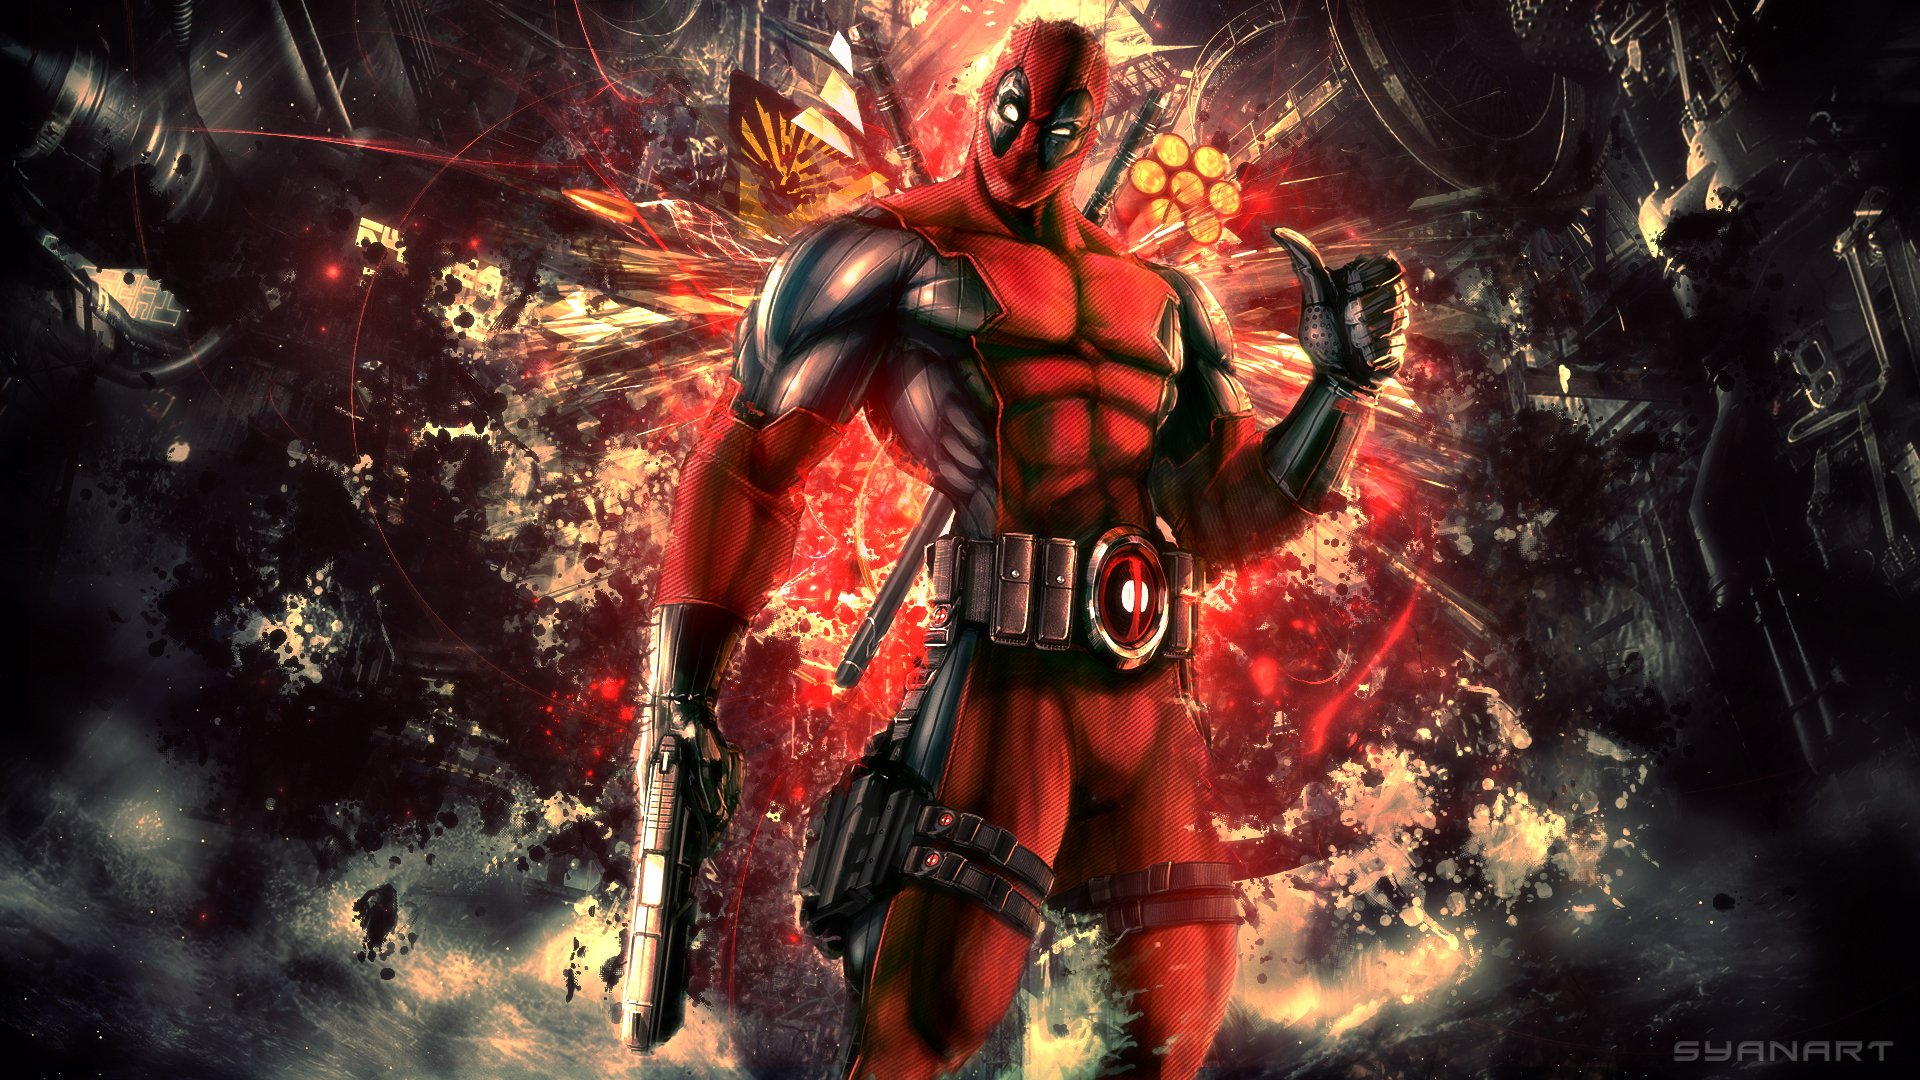 1920x1080 Wallpaper deadpool wade wilson mercenary anti hero high 1920x1080